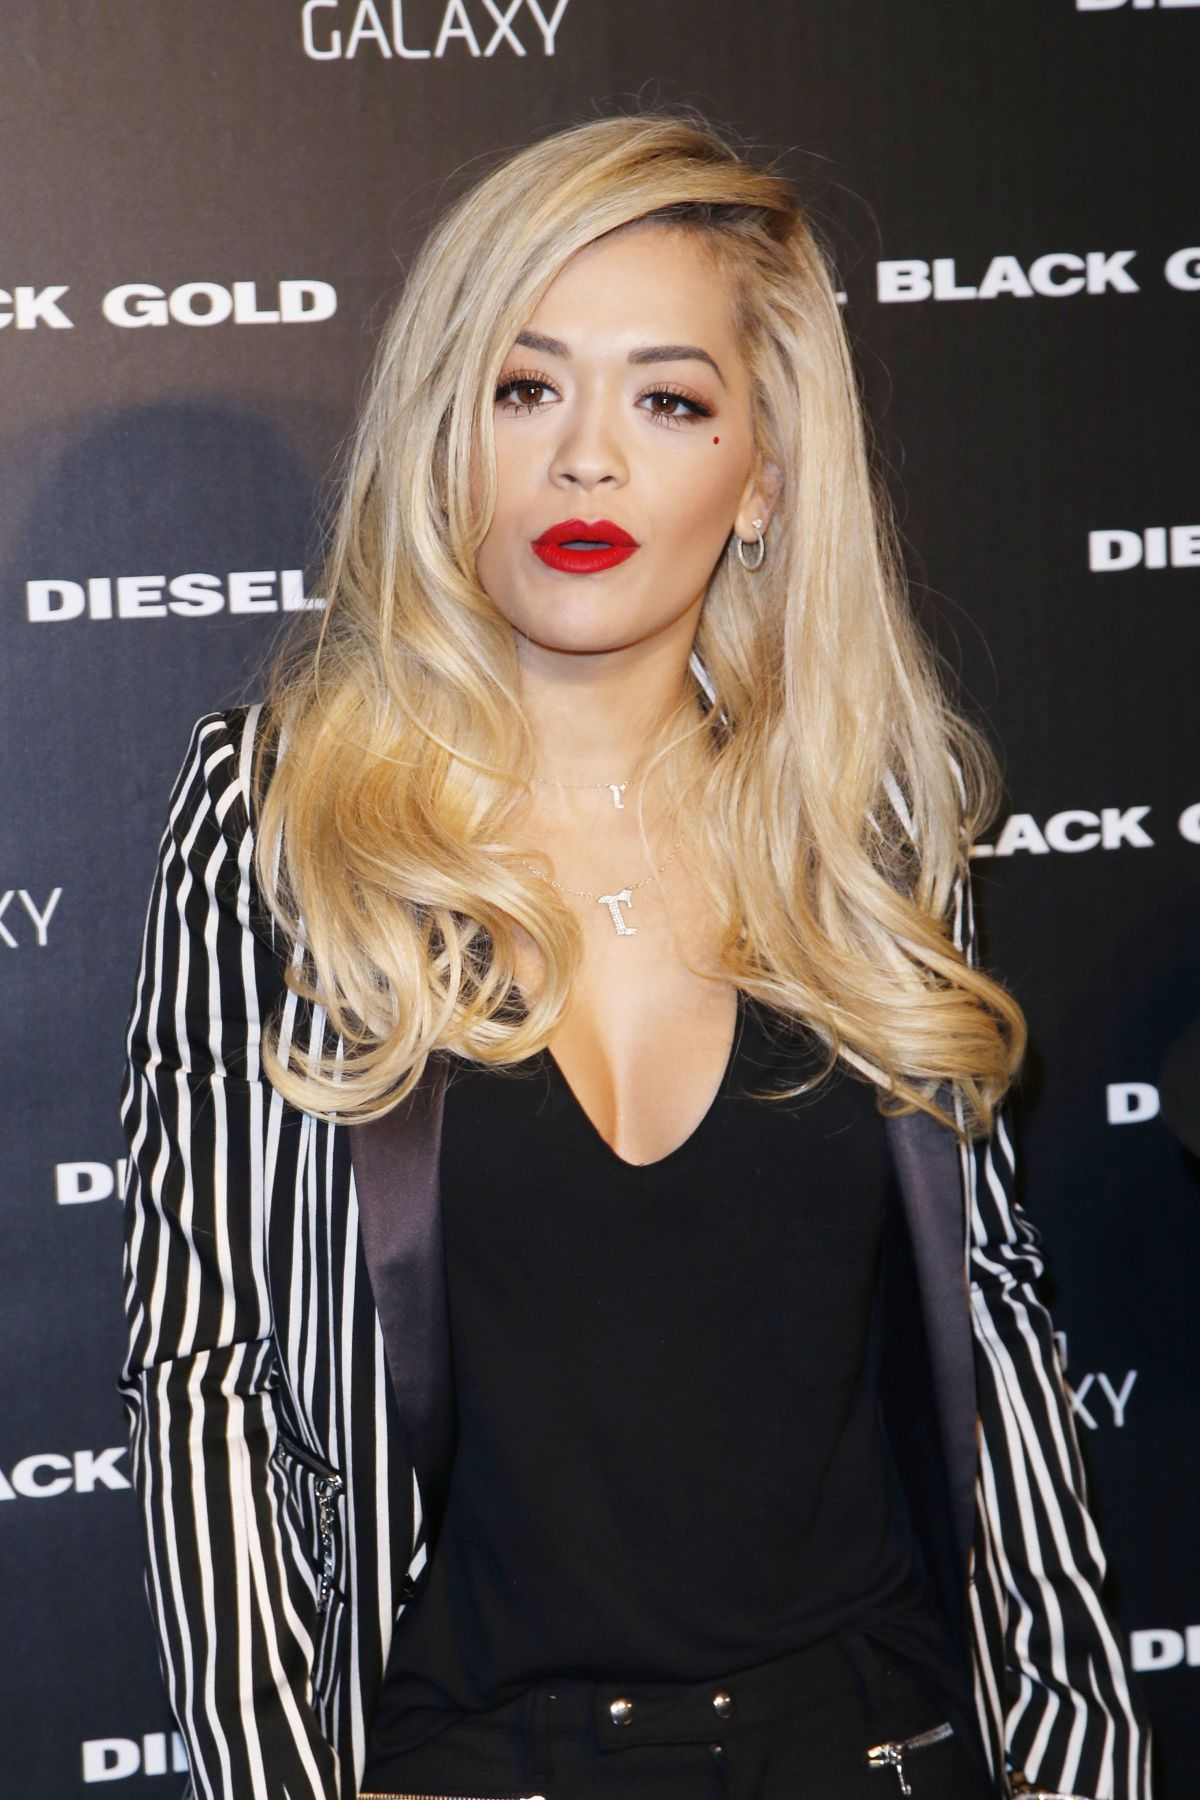 RITA ORA at Diesel Black Gold Fashion Show in New York